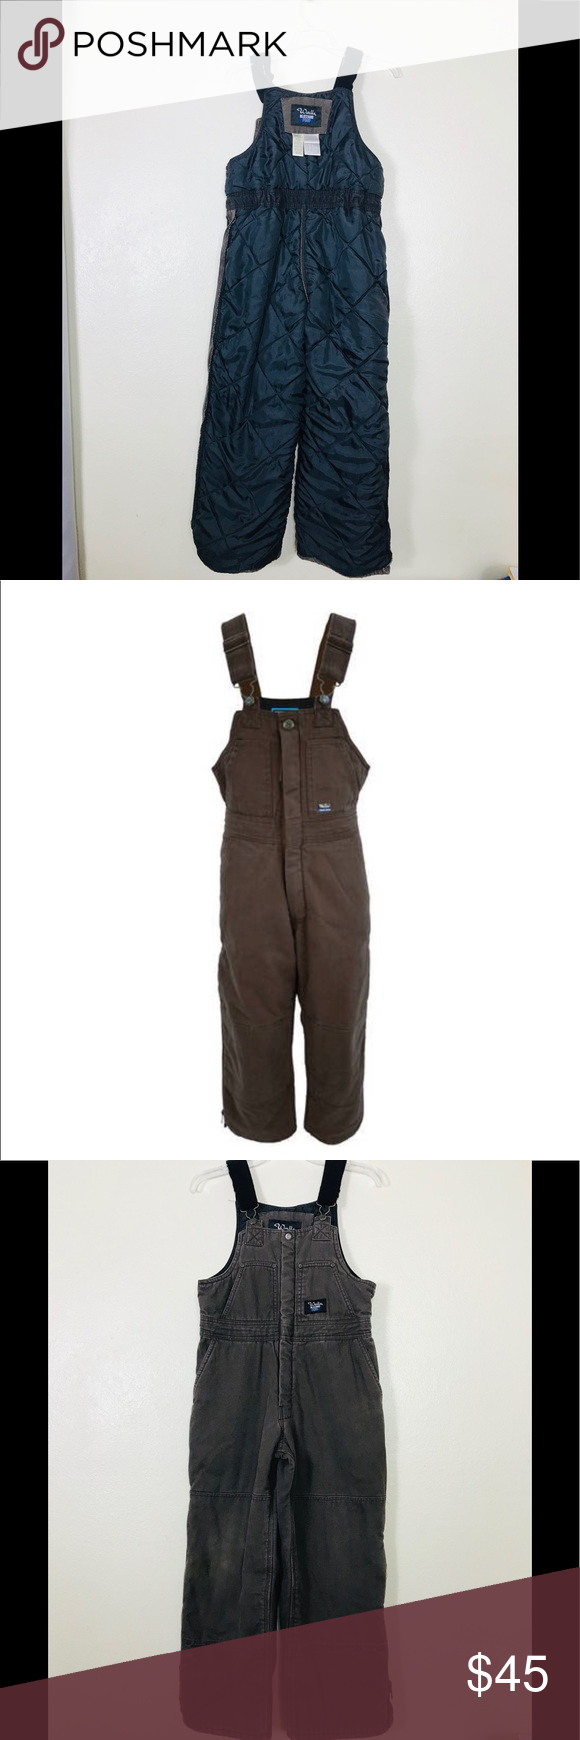 pin on my posh closet on walls insulated coveralls blizzard pruf id=58940